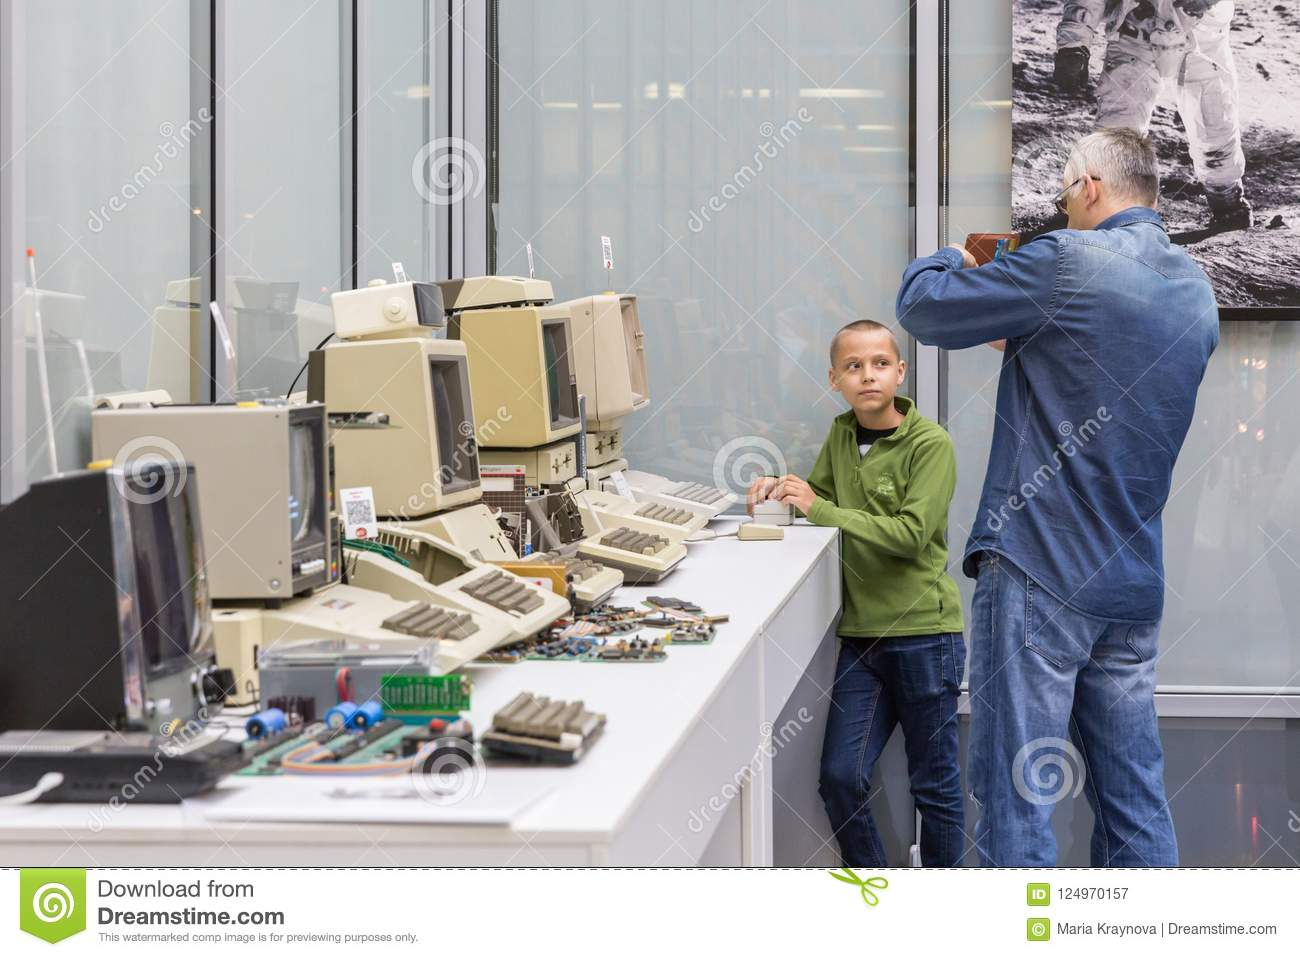 MOSCOW, RUSSIA - JUNE 11, 2018: Old original Apple Mac computers